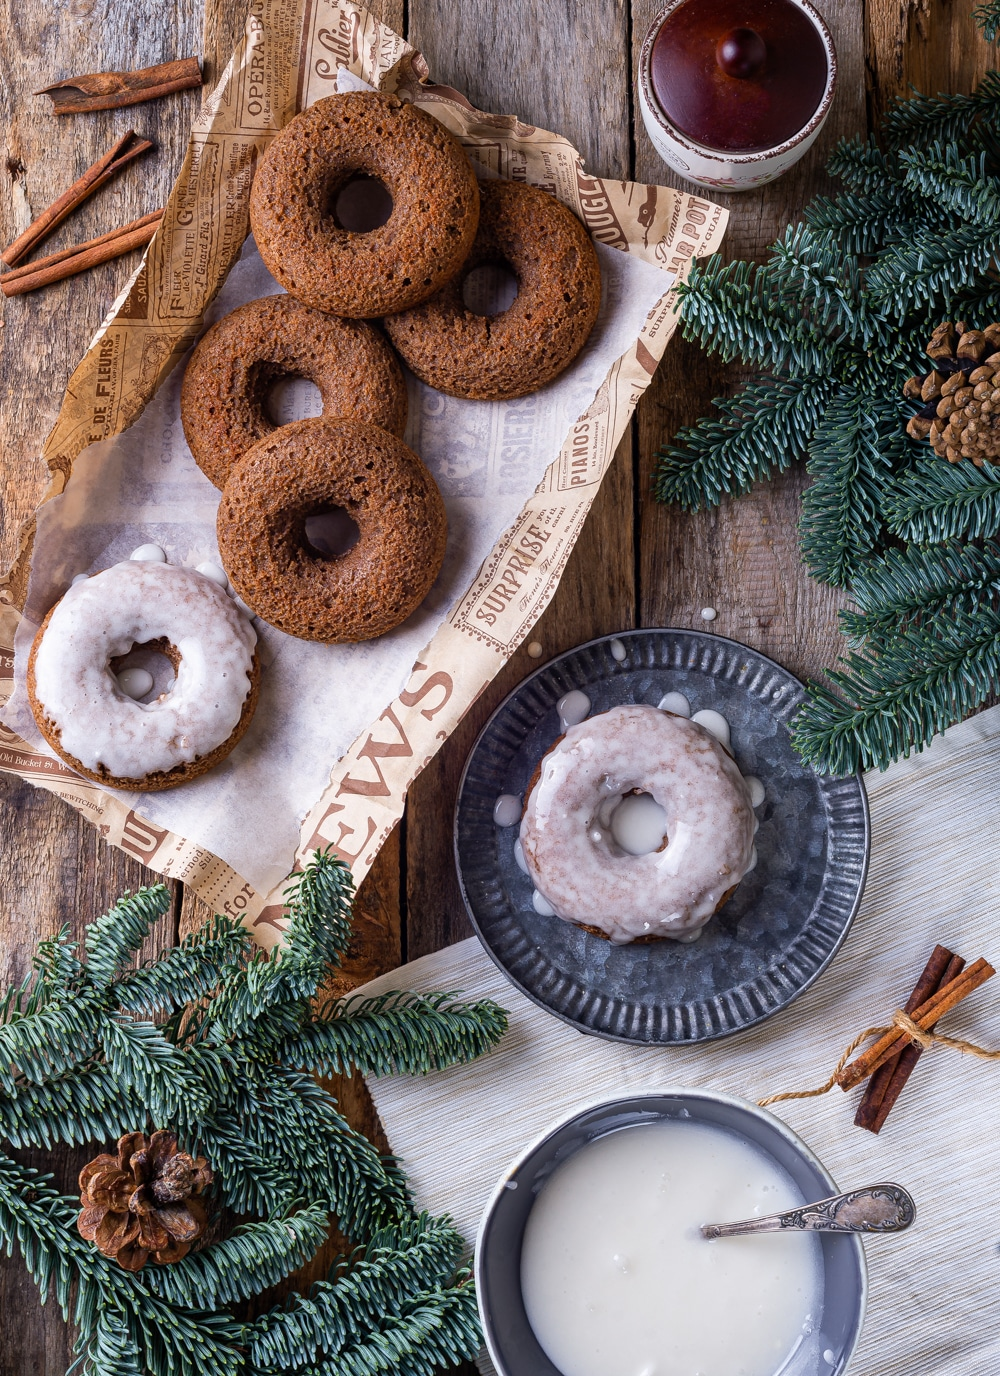 Five gingerbread donuts scattered on paper and a glazed gingerbread donut on a plate next to it. Everything is set on a wooden table with pine branches surrounding the donuts.